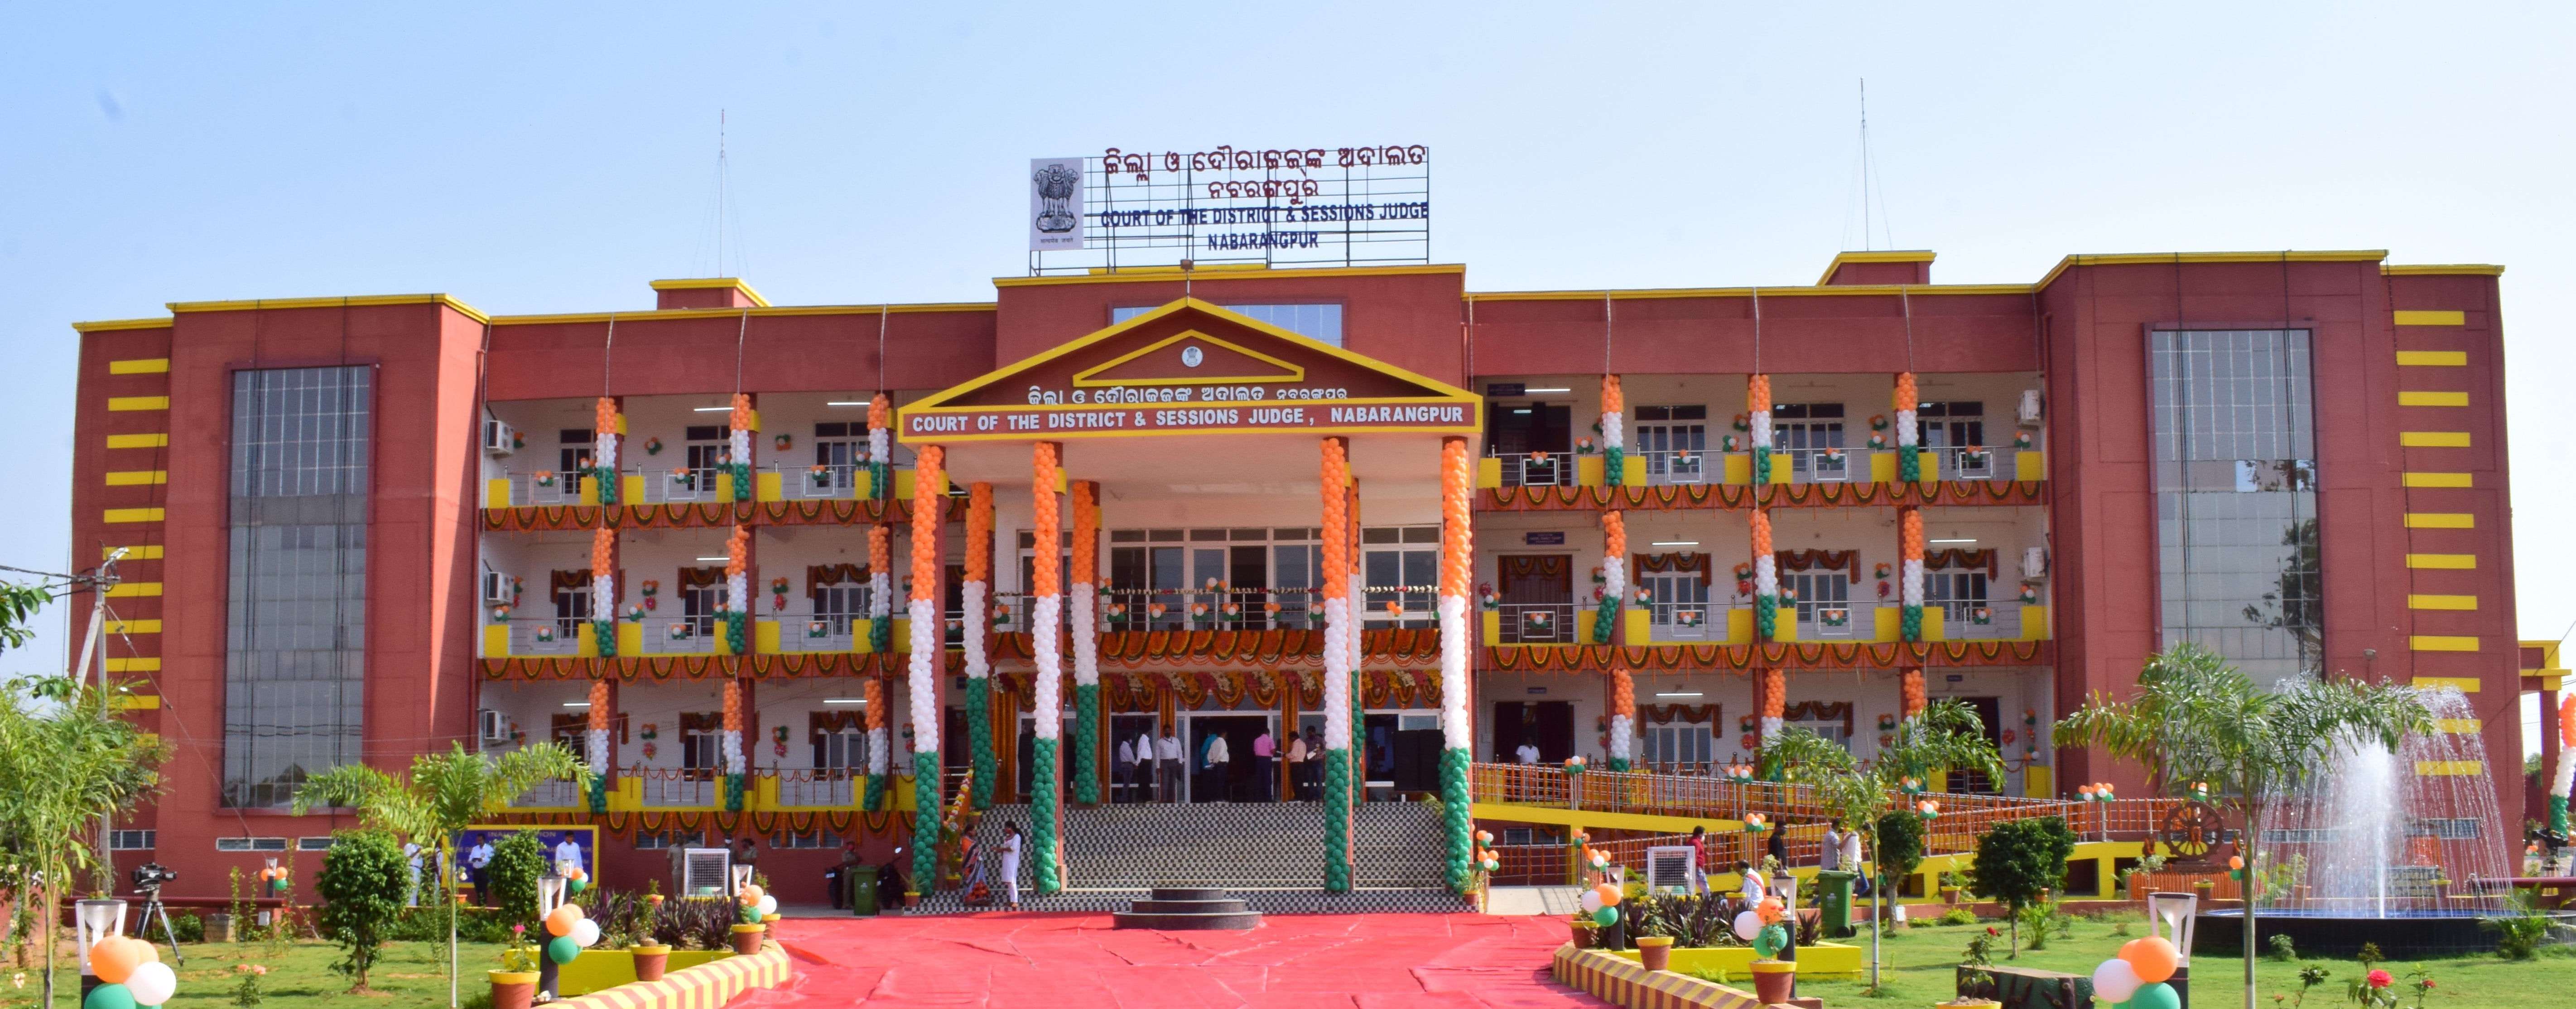 FRONT VIEW OF DISTRICT COURT COMPLEX, NABARANGPUR